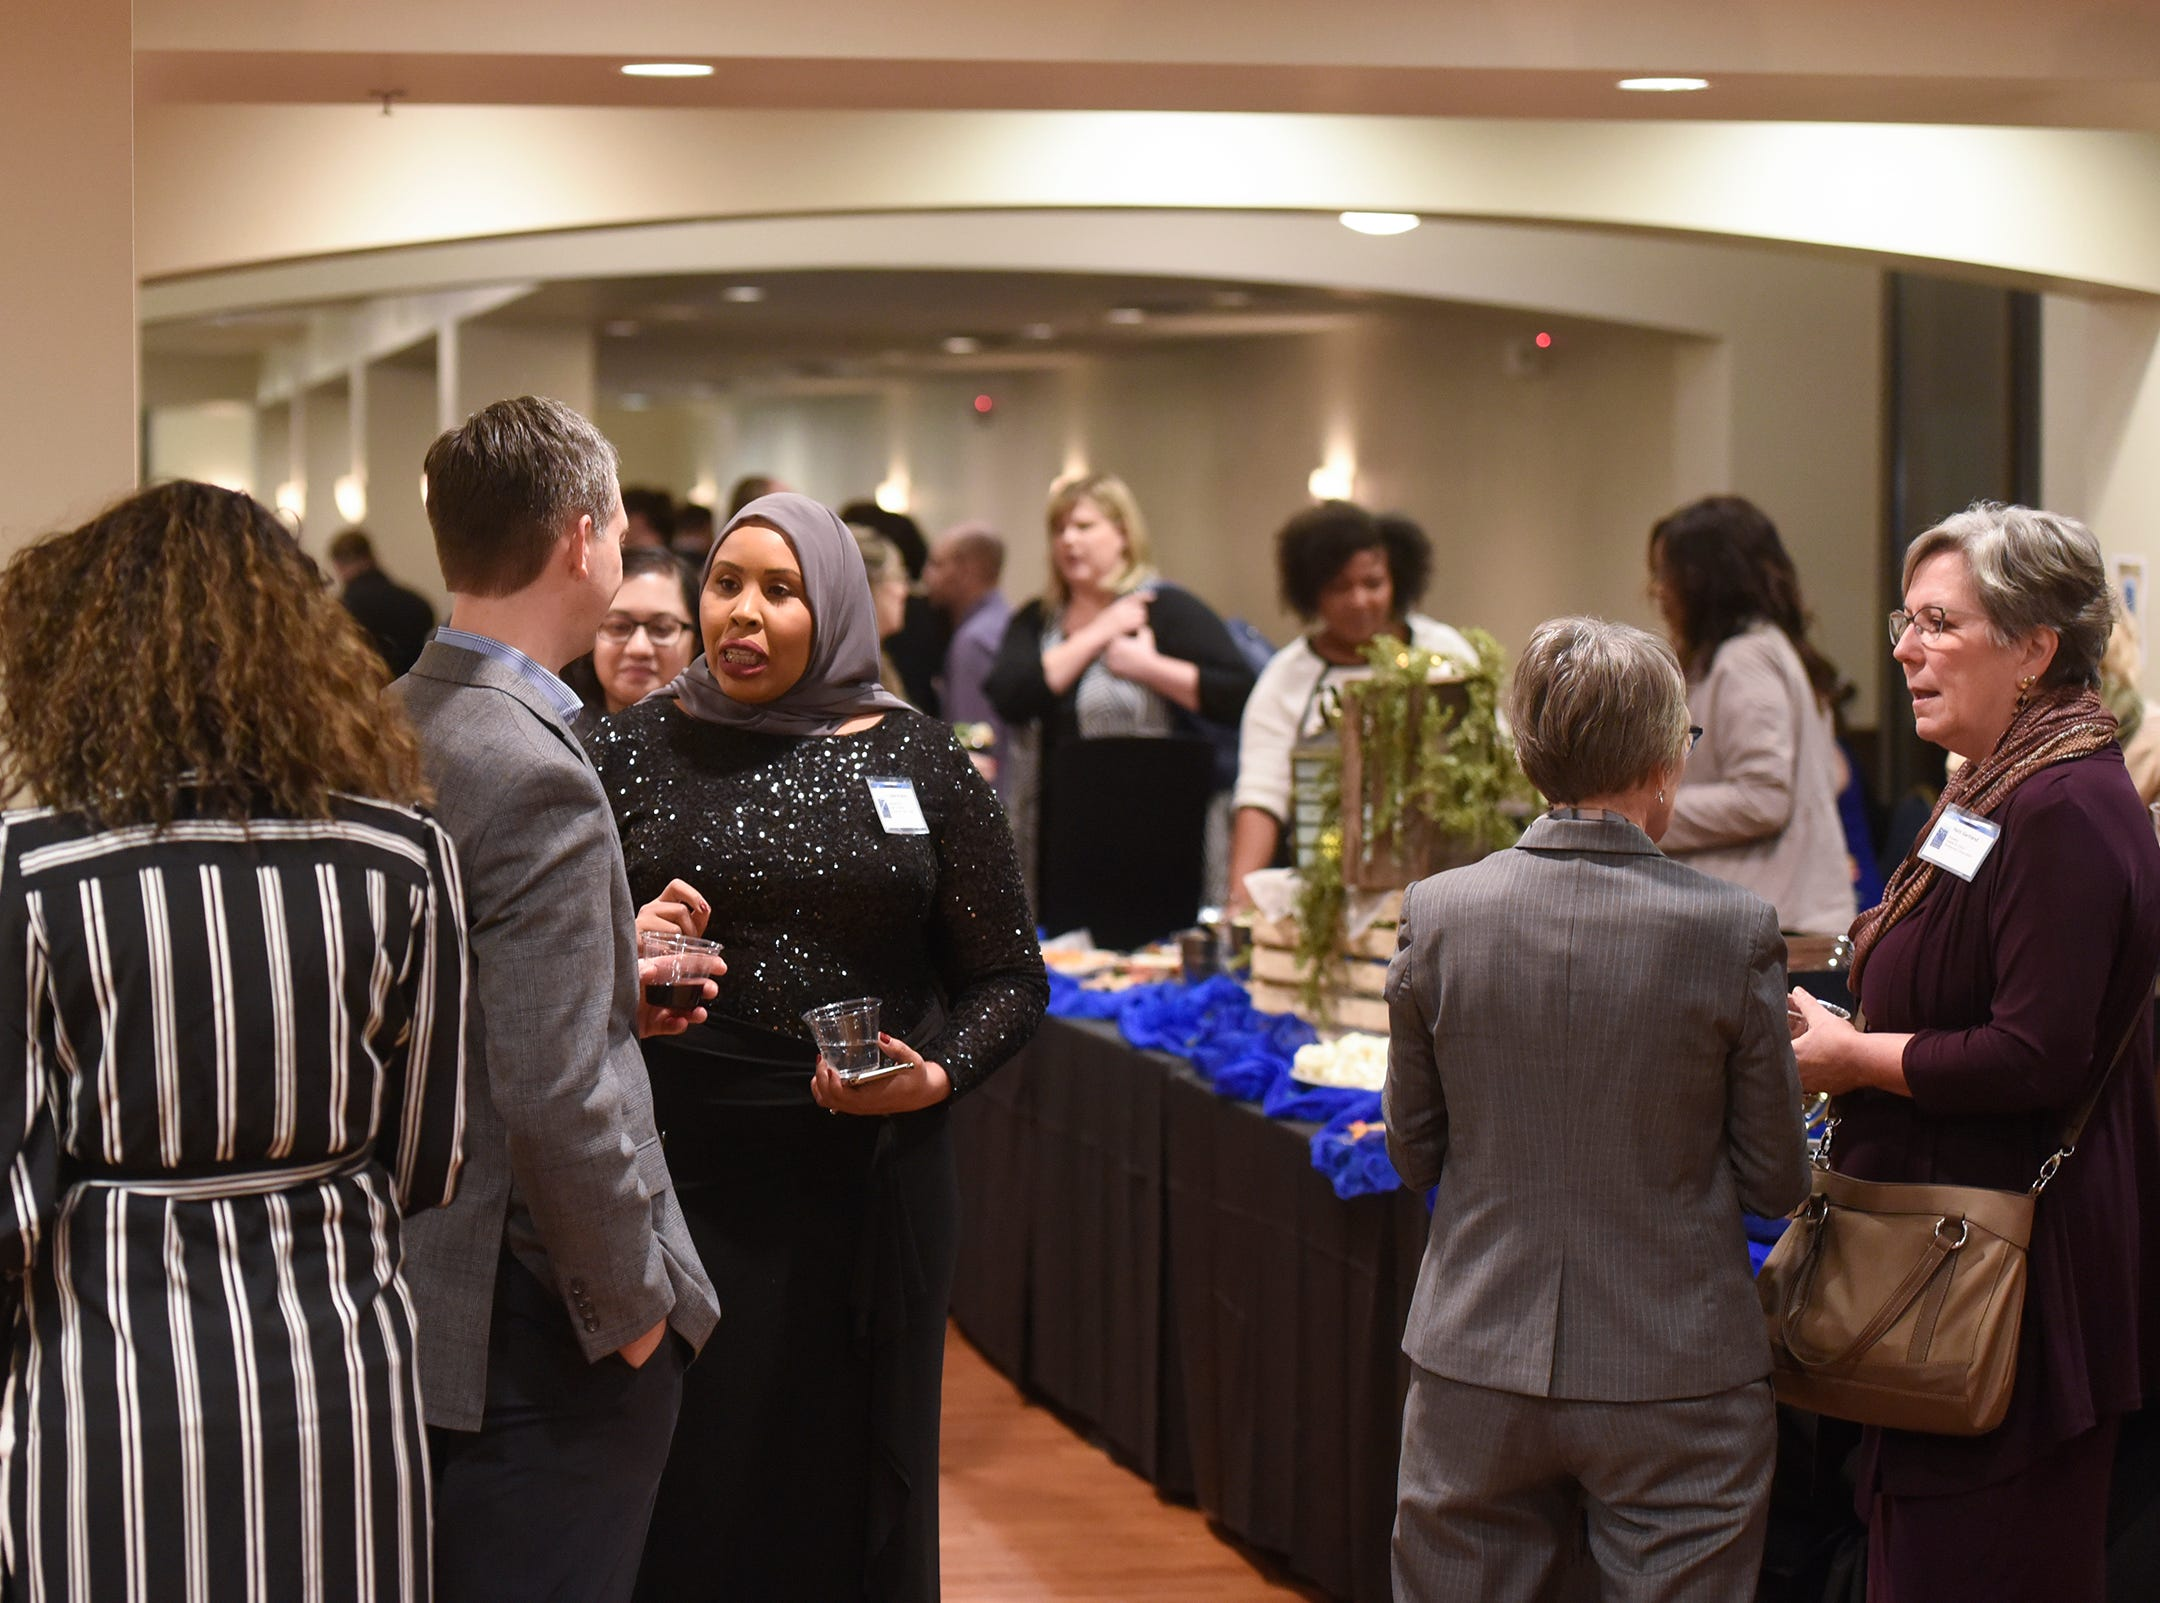 People gather before the start of the 5 Under 40 Awards program Tuesday, Jan. 15, in St. Cloud.